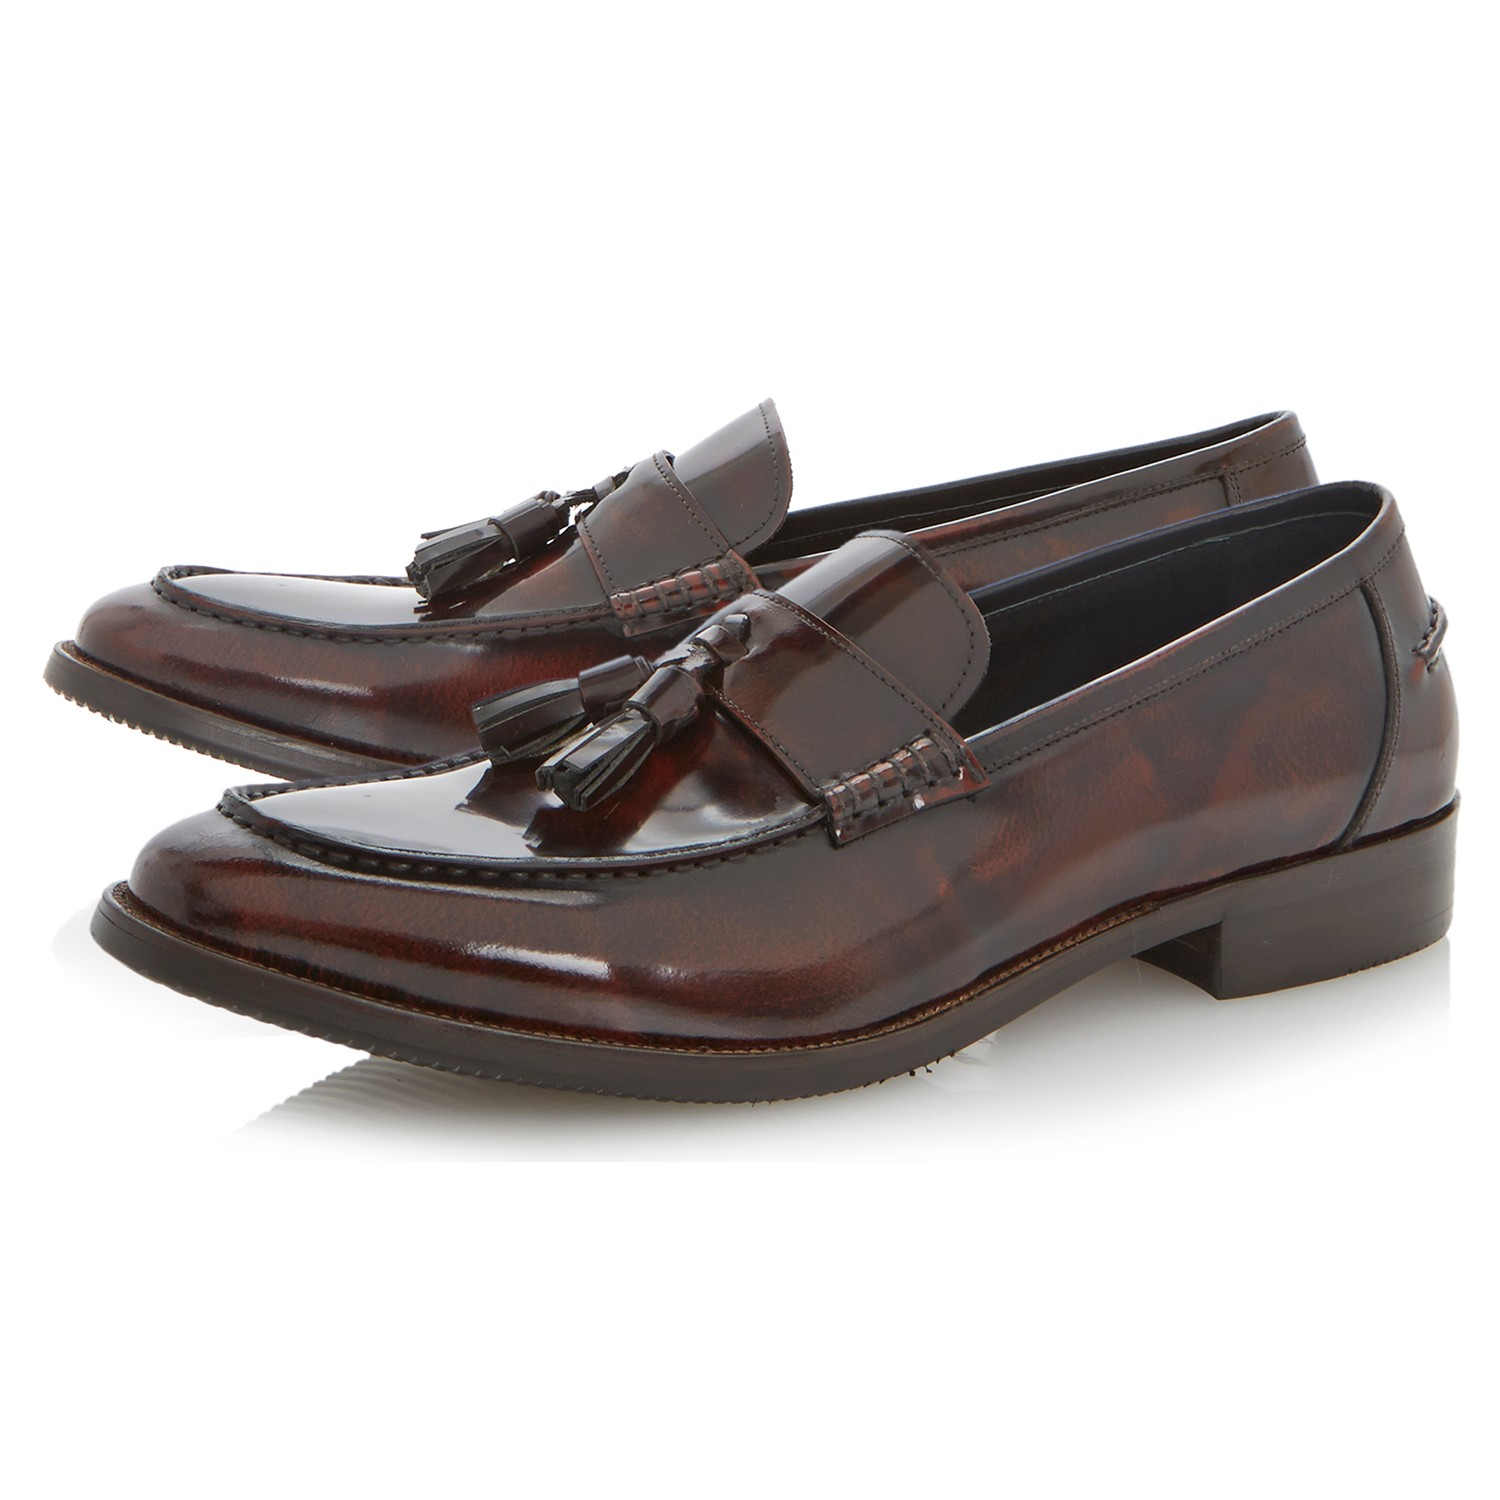 Dune Loafers In Leather fPbjE0